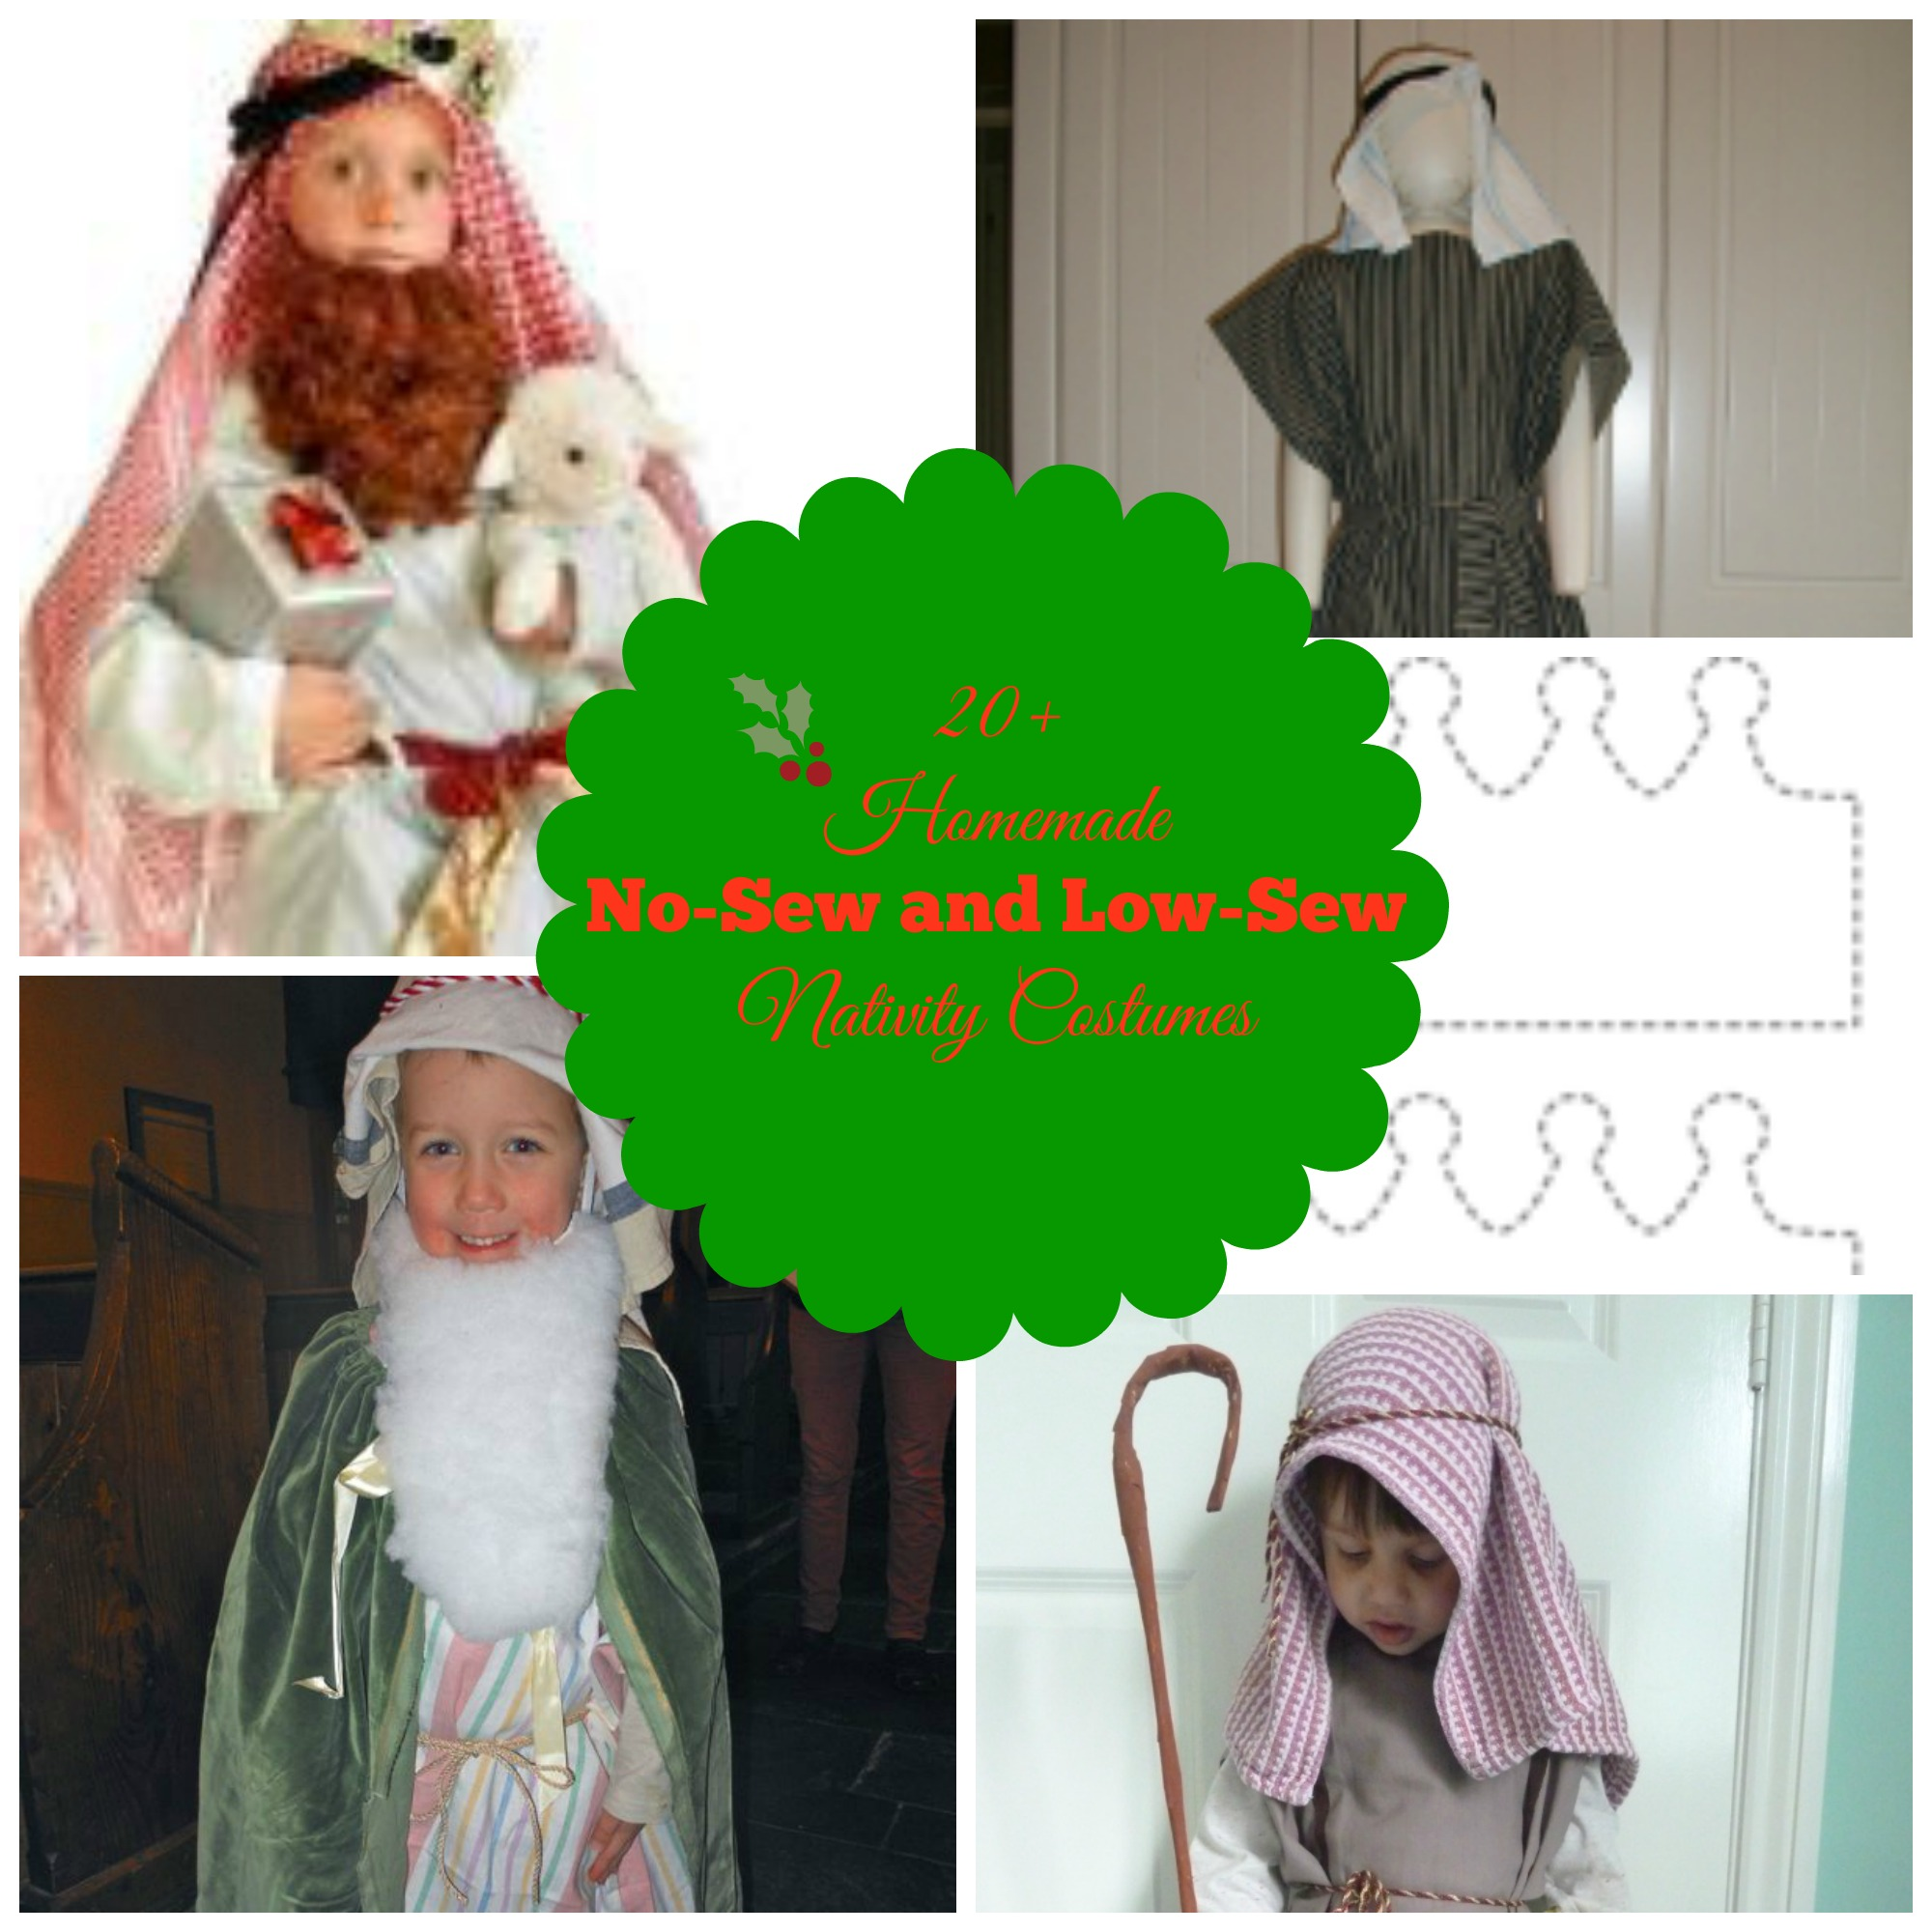 20 homemade no sew and nearly no sew nativity costumes my make do this one from make your own nativity costumes has a downloadable pdf to make a basic tunic that can be adapted for lots of different costumes inn solutioingenieria Image collections